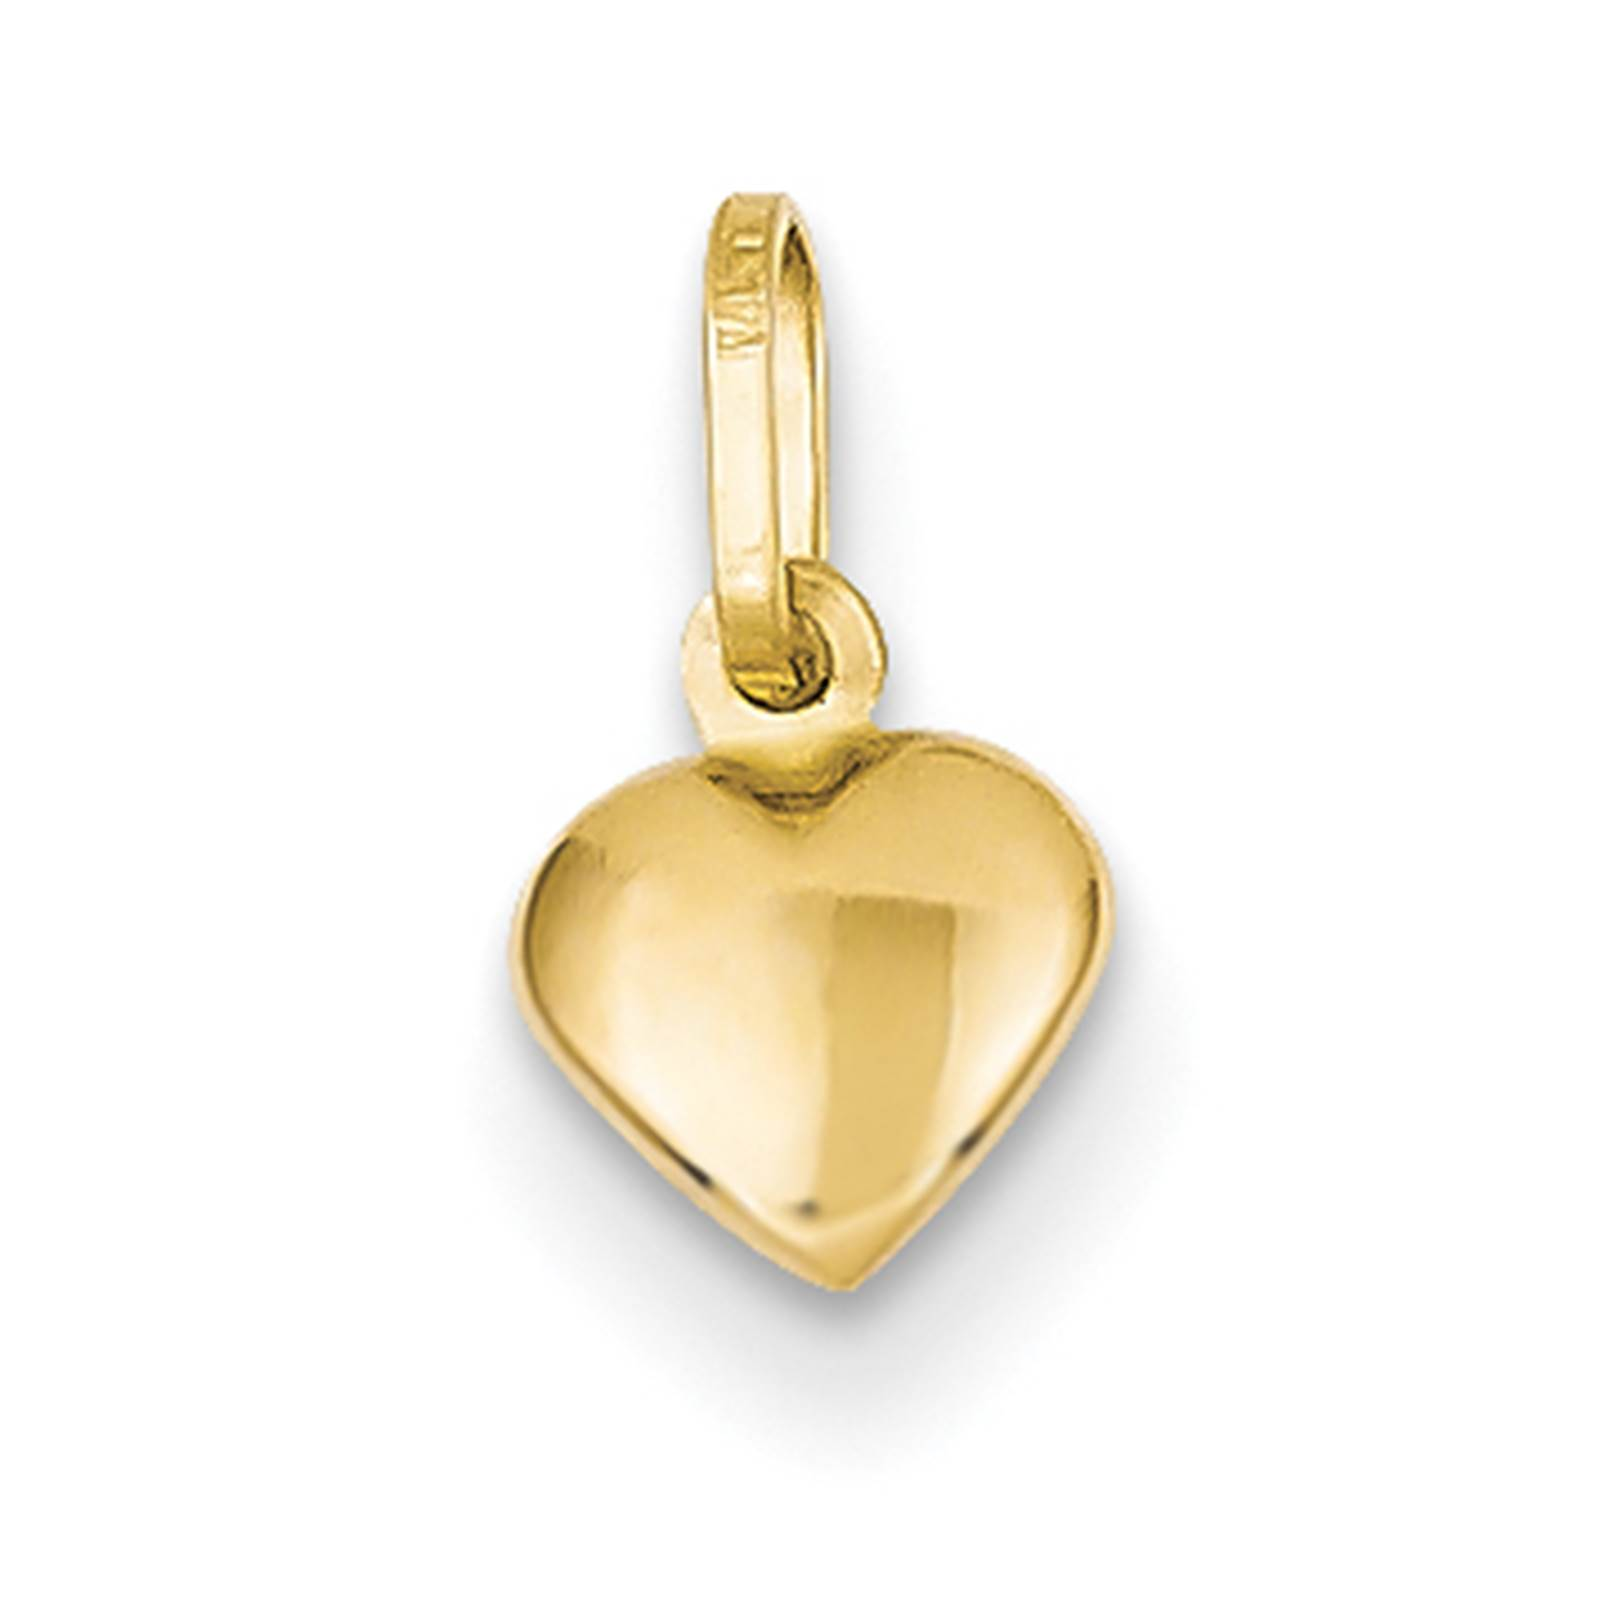 14k Yellow Gold Open-Backed Ballerina Polished Charm Pendant 20mmx6mm